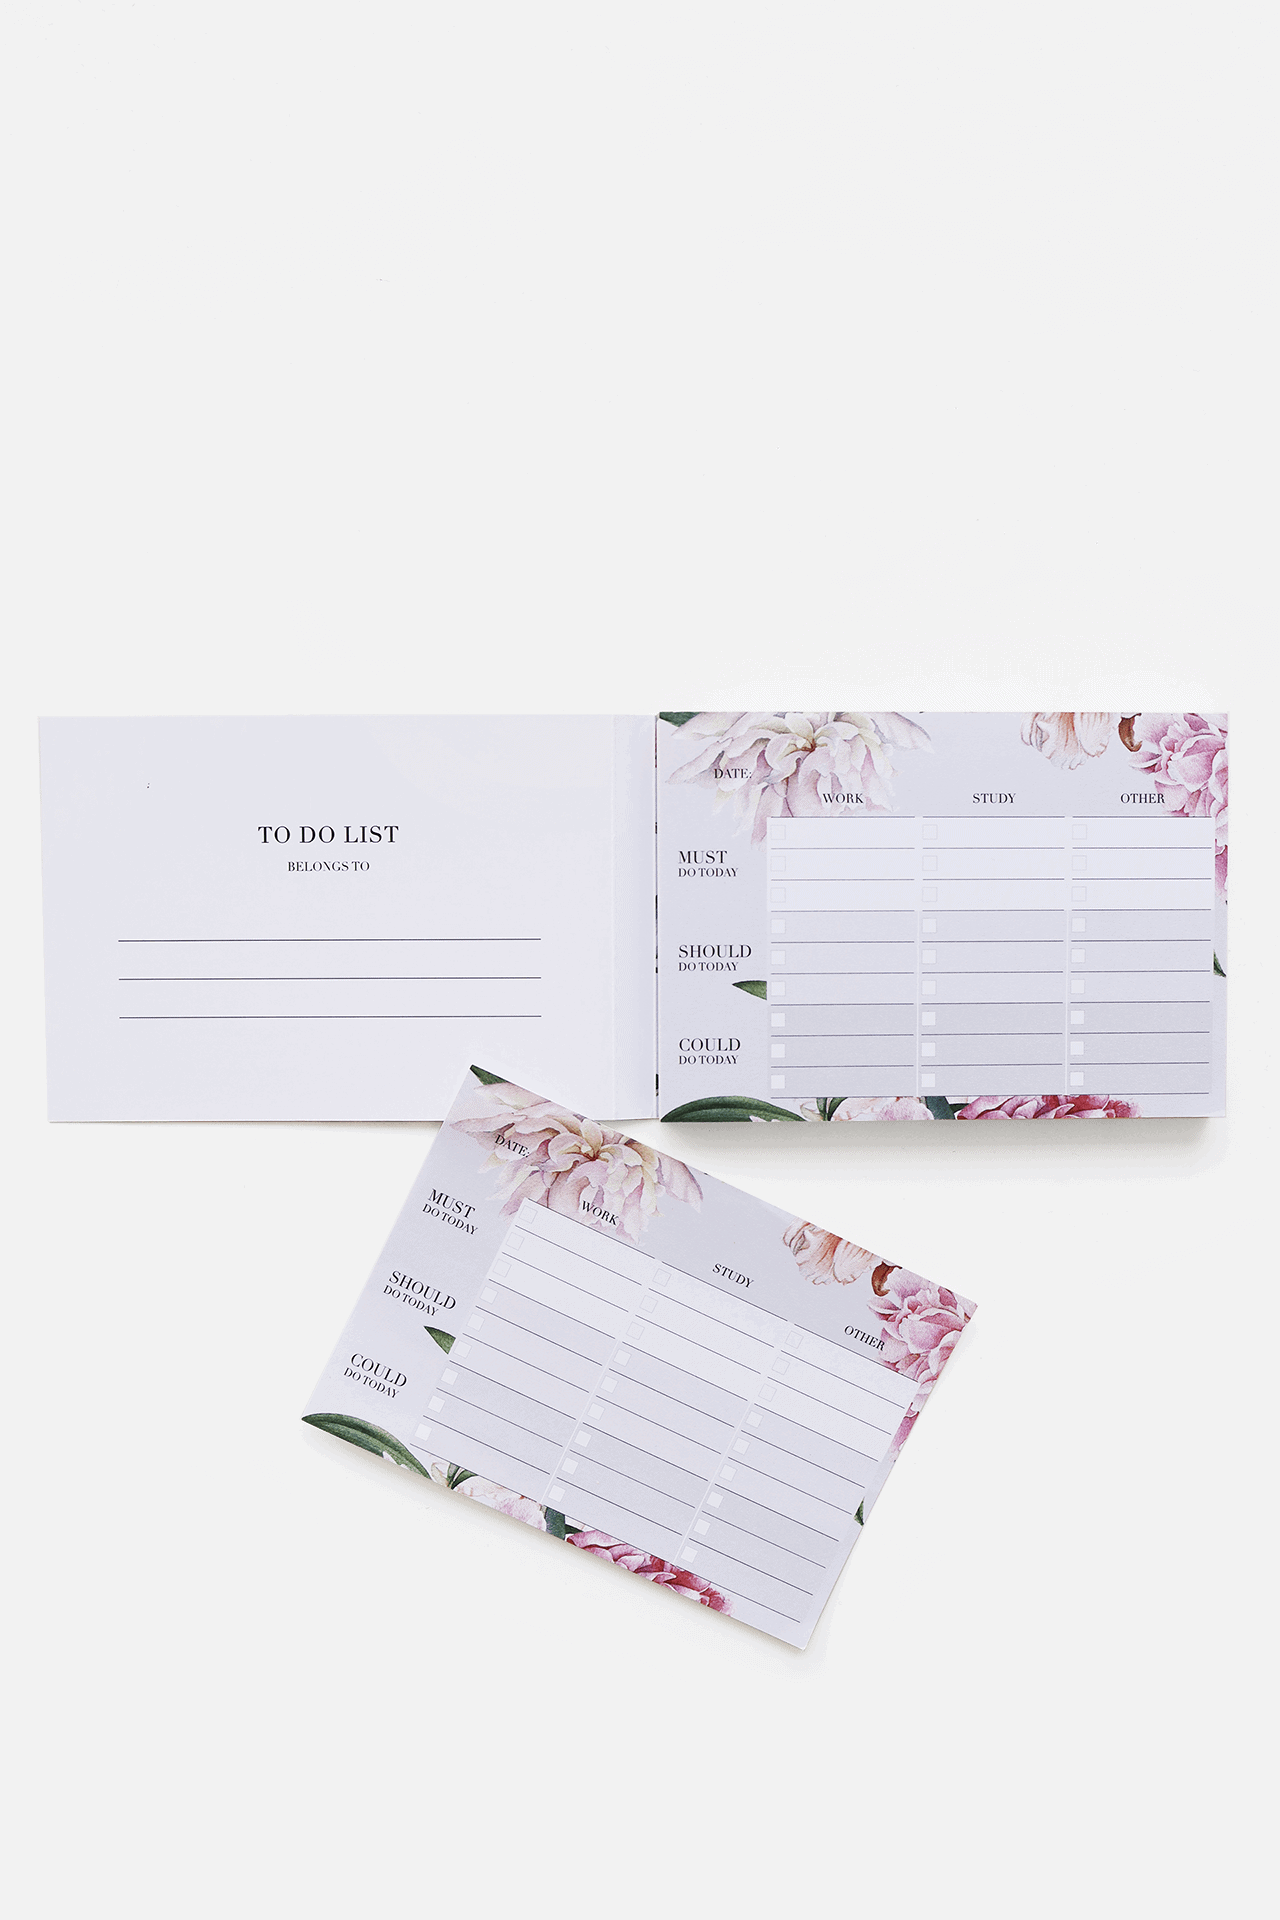 Supplied by Lily Luxury Student Stationery To Do List in Luxurious Floral